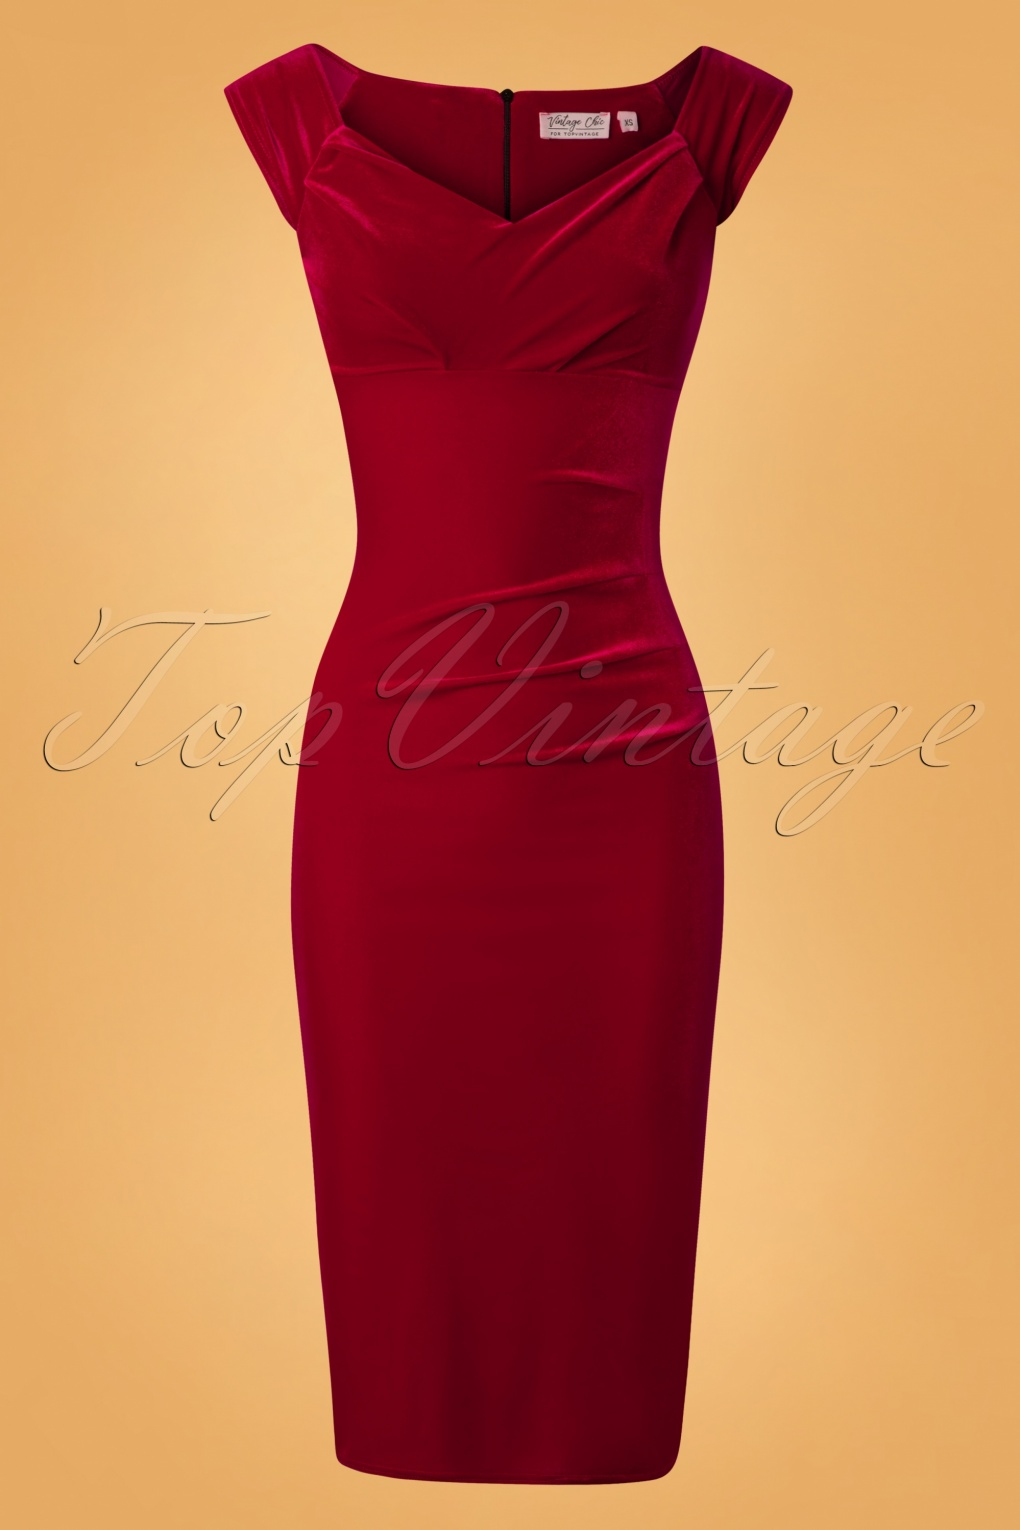 Vintage Style Dresses | Vintage Inspired Dresses 50s Lynn Velvet Pencil Dress in Red £50.78 AT vintagedancer.com